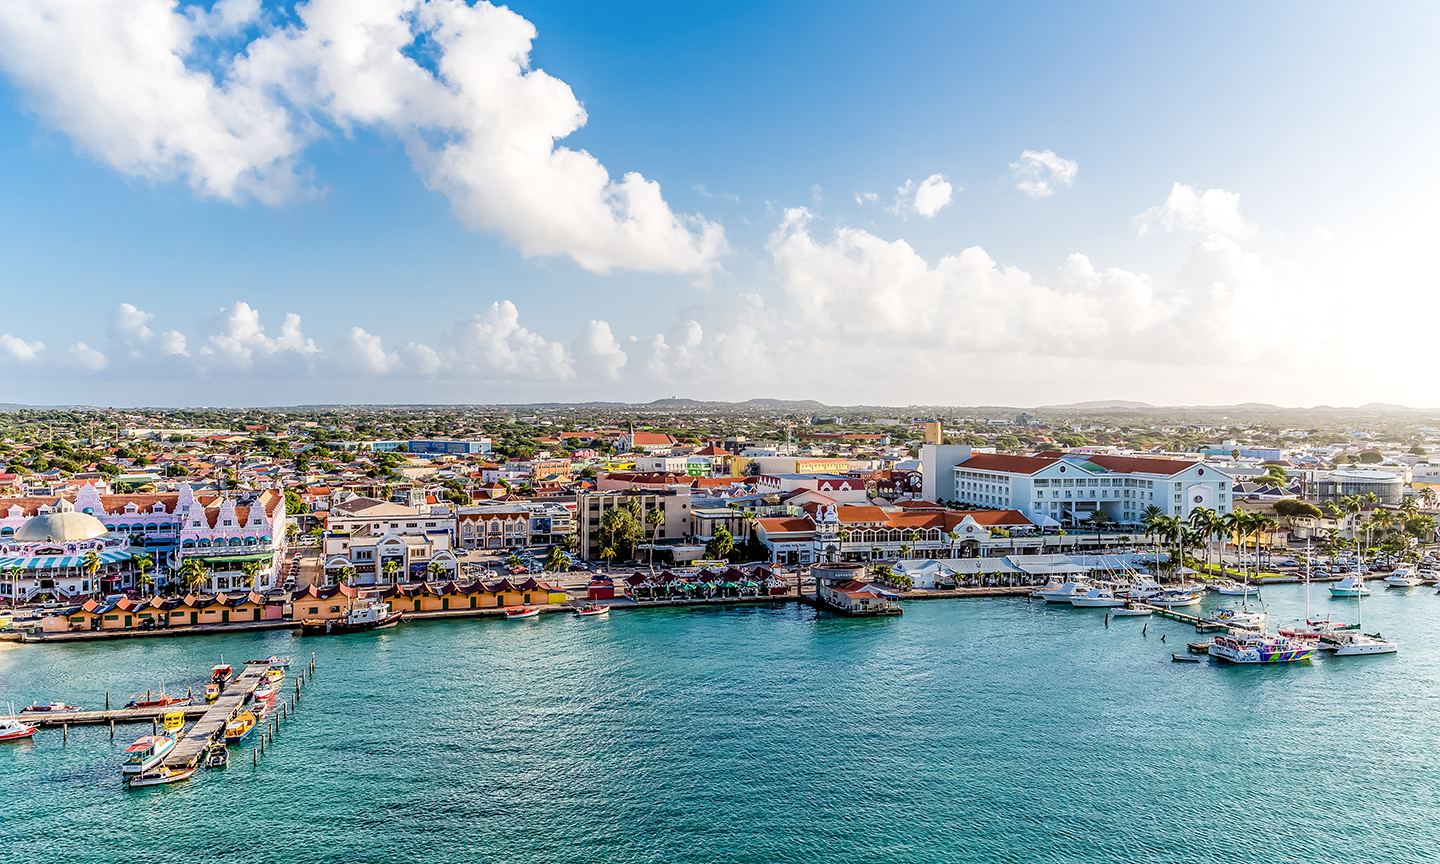 The waterfront in Oranjestad, Aruba, with brightly-colored buildings and green-blue sea.